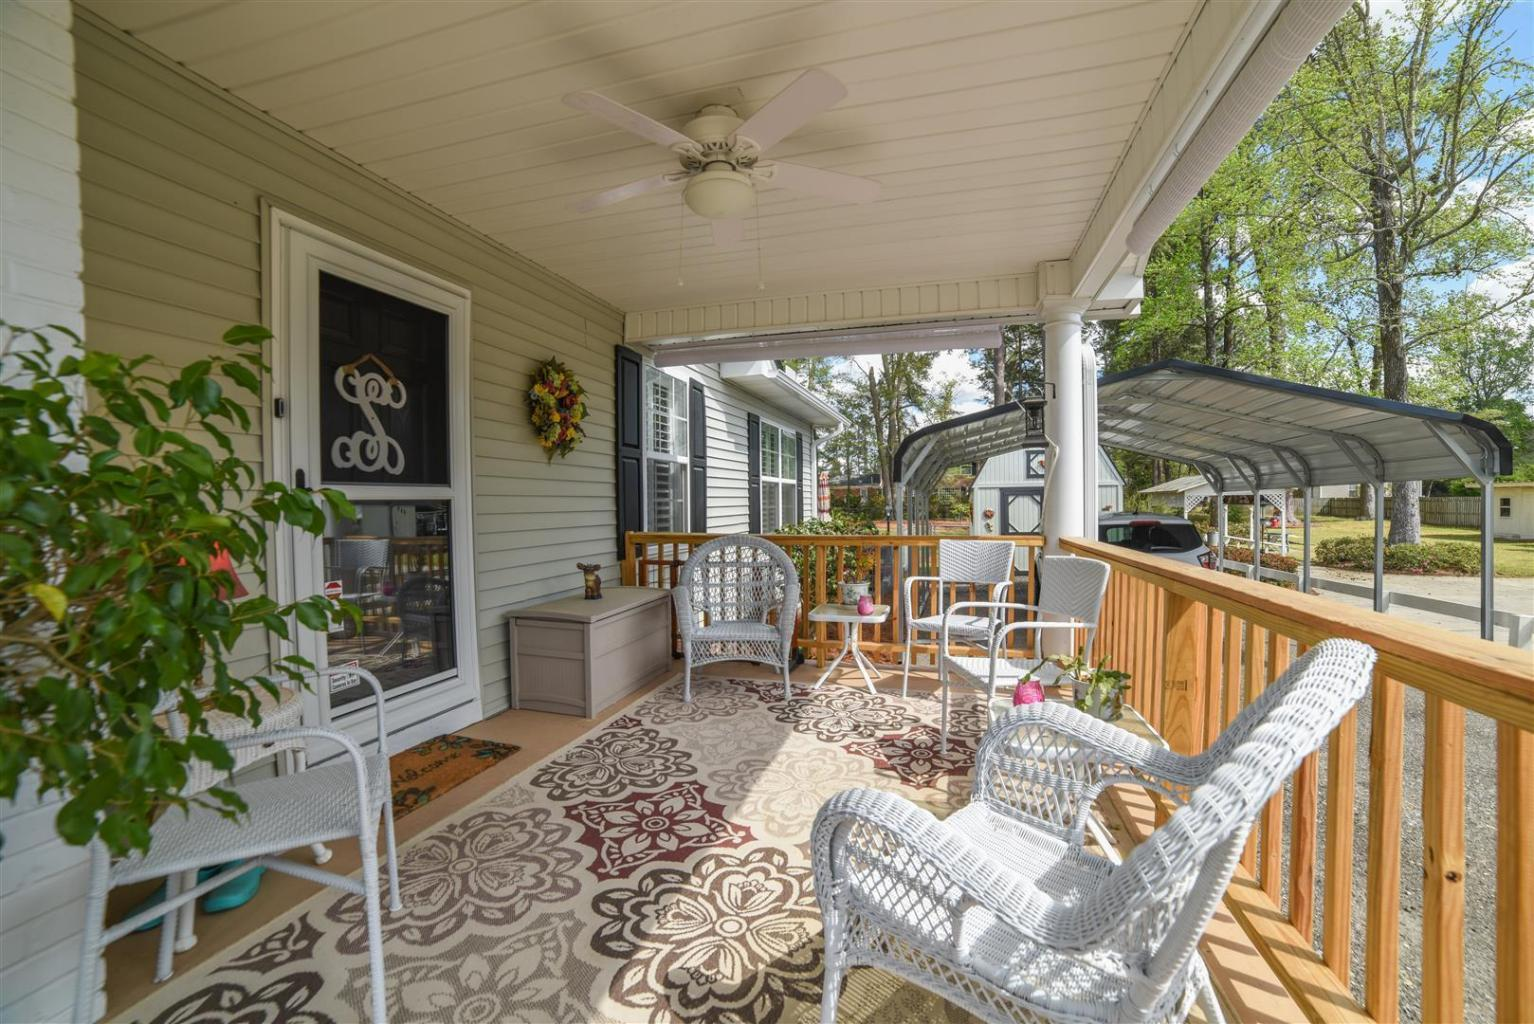 Photo of 316 Behling St, St George, SC 29477